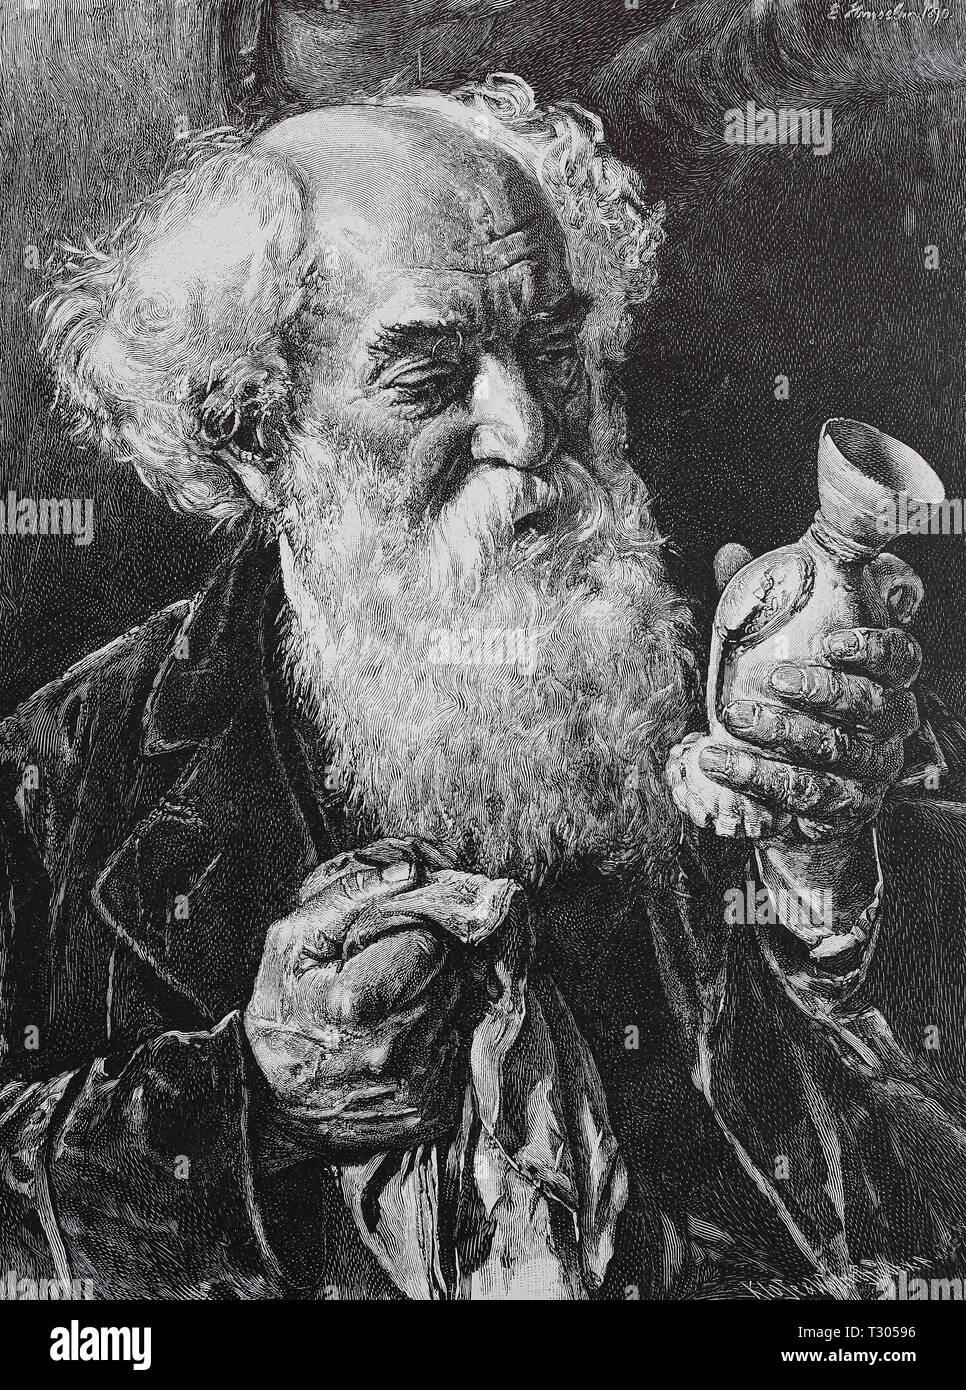 Digital improved reproduction, The collector, old man with full beard cleans a porcelain vase from his collection, Der Sammler, alter Mann mit Vollbart putzt eine Porzellanvase aus seiner Sammlung, from an original print from the 19th century - Stock Image